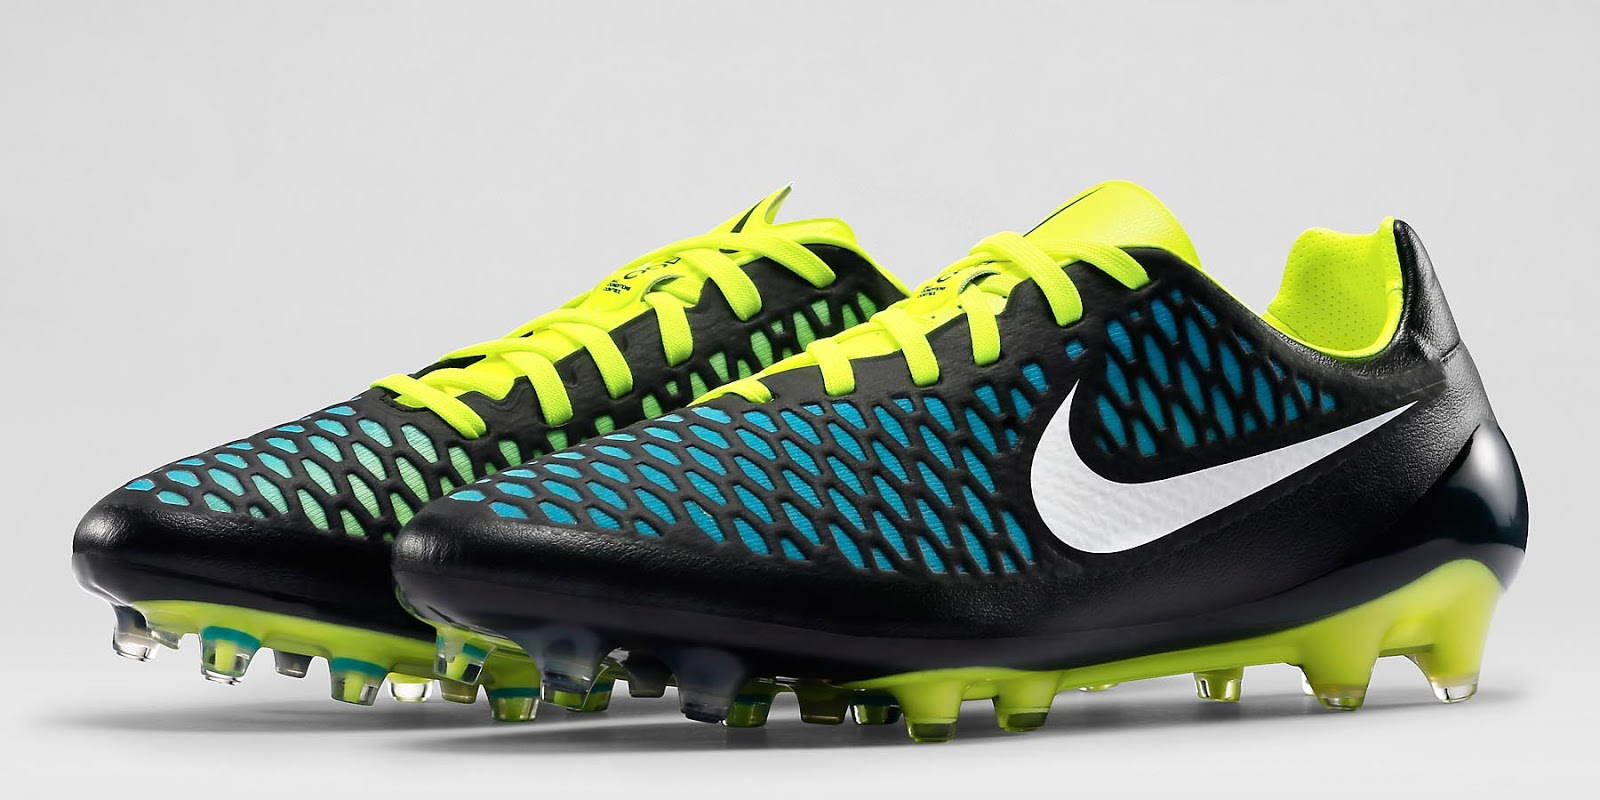 lowest price 05968 a195d ... Nike Magista Opus 2015 Boots Revealed - Black   Blue   Volt - Footy  Headlines